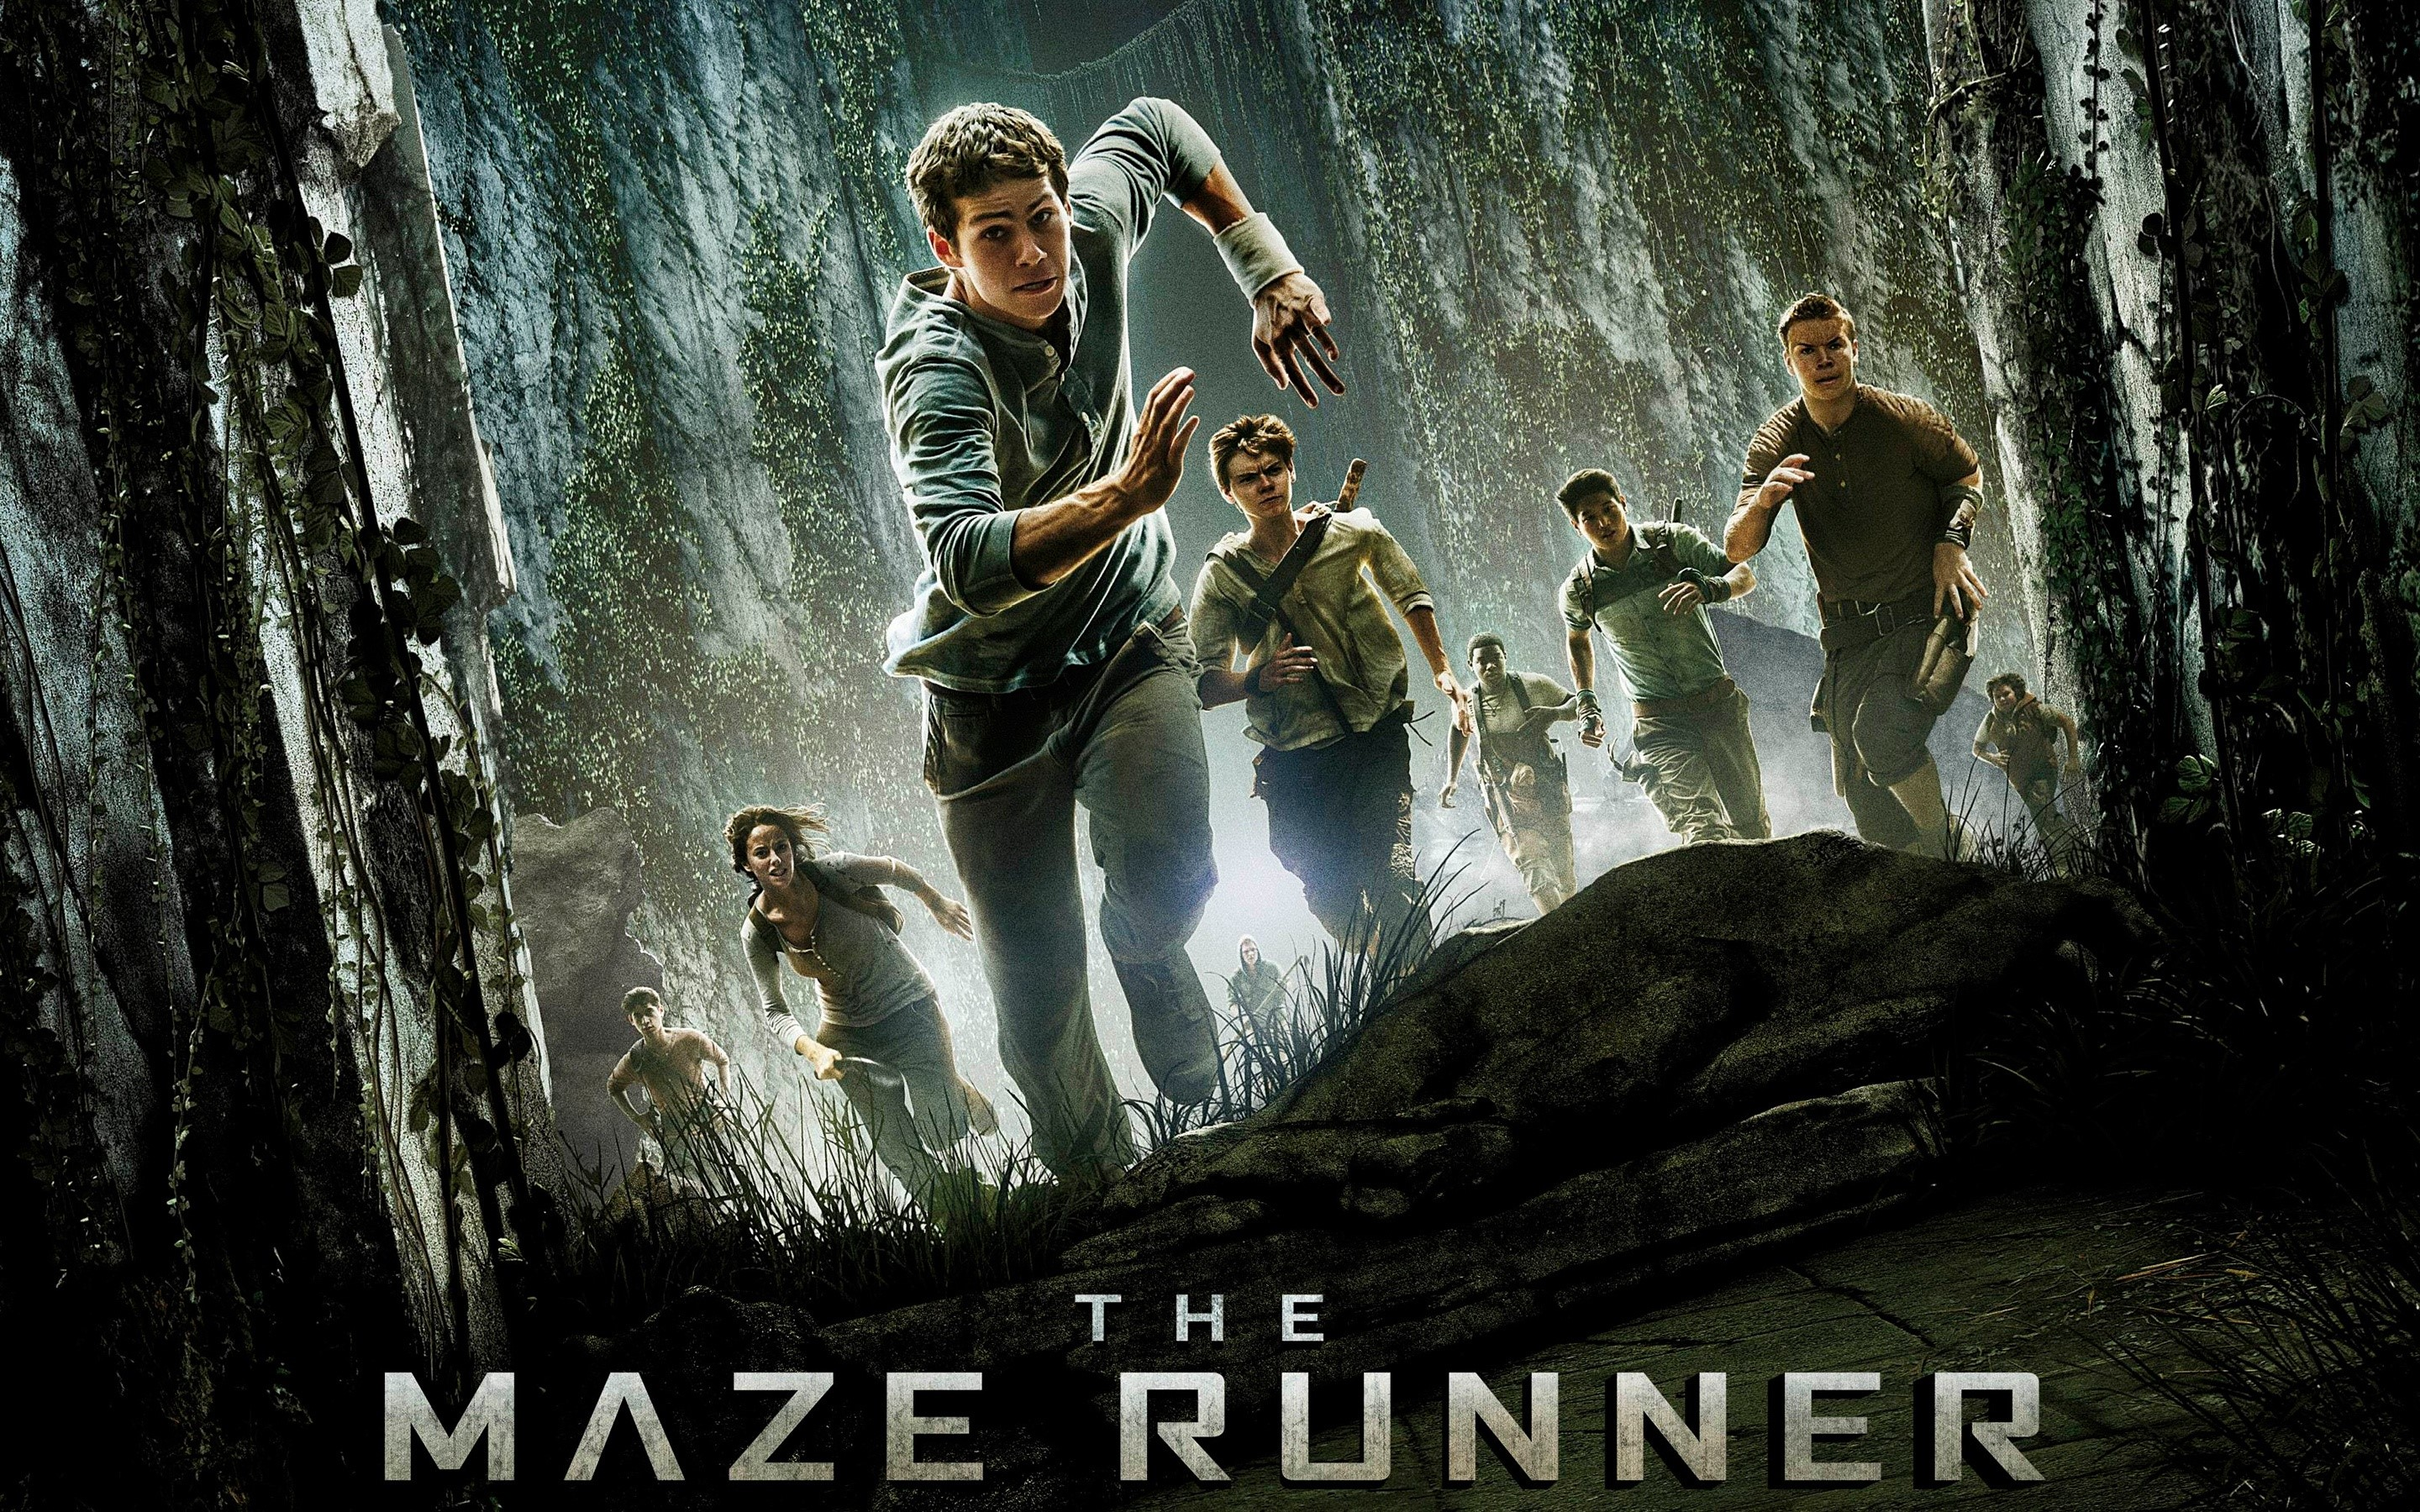 Fondos de pantalla The maze runner still